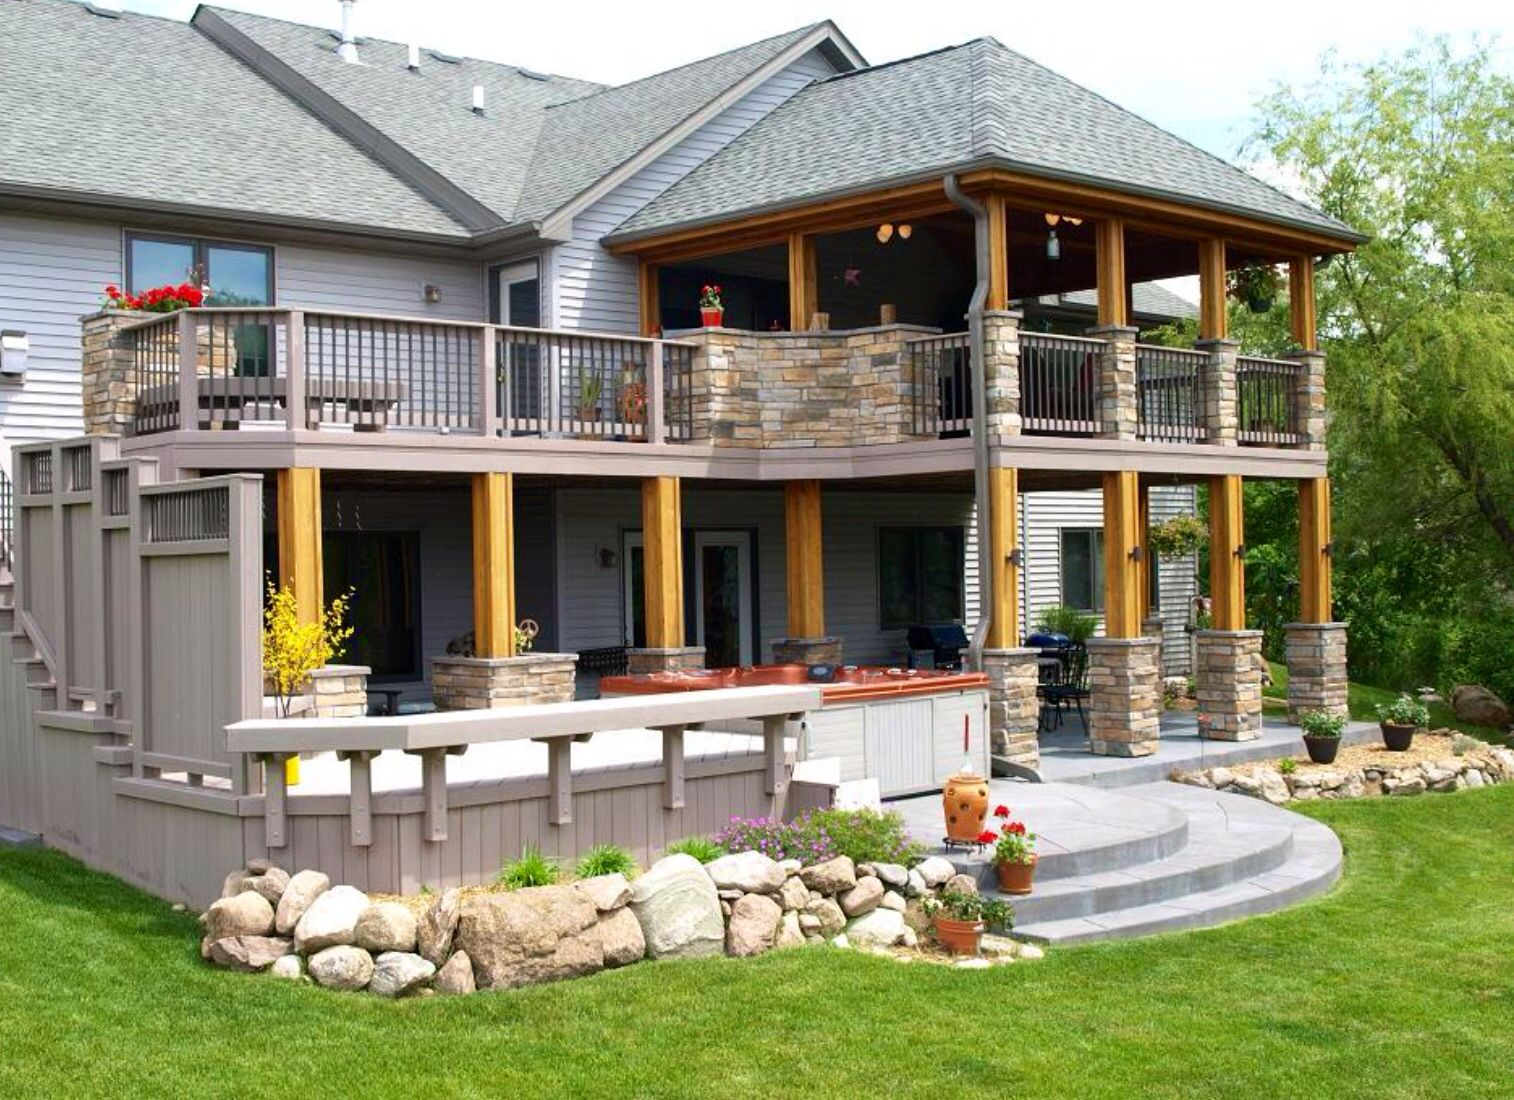 Pin By Jason Holmes On Decks House Deck Decks And Porches House With Porch